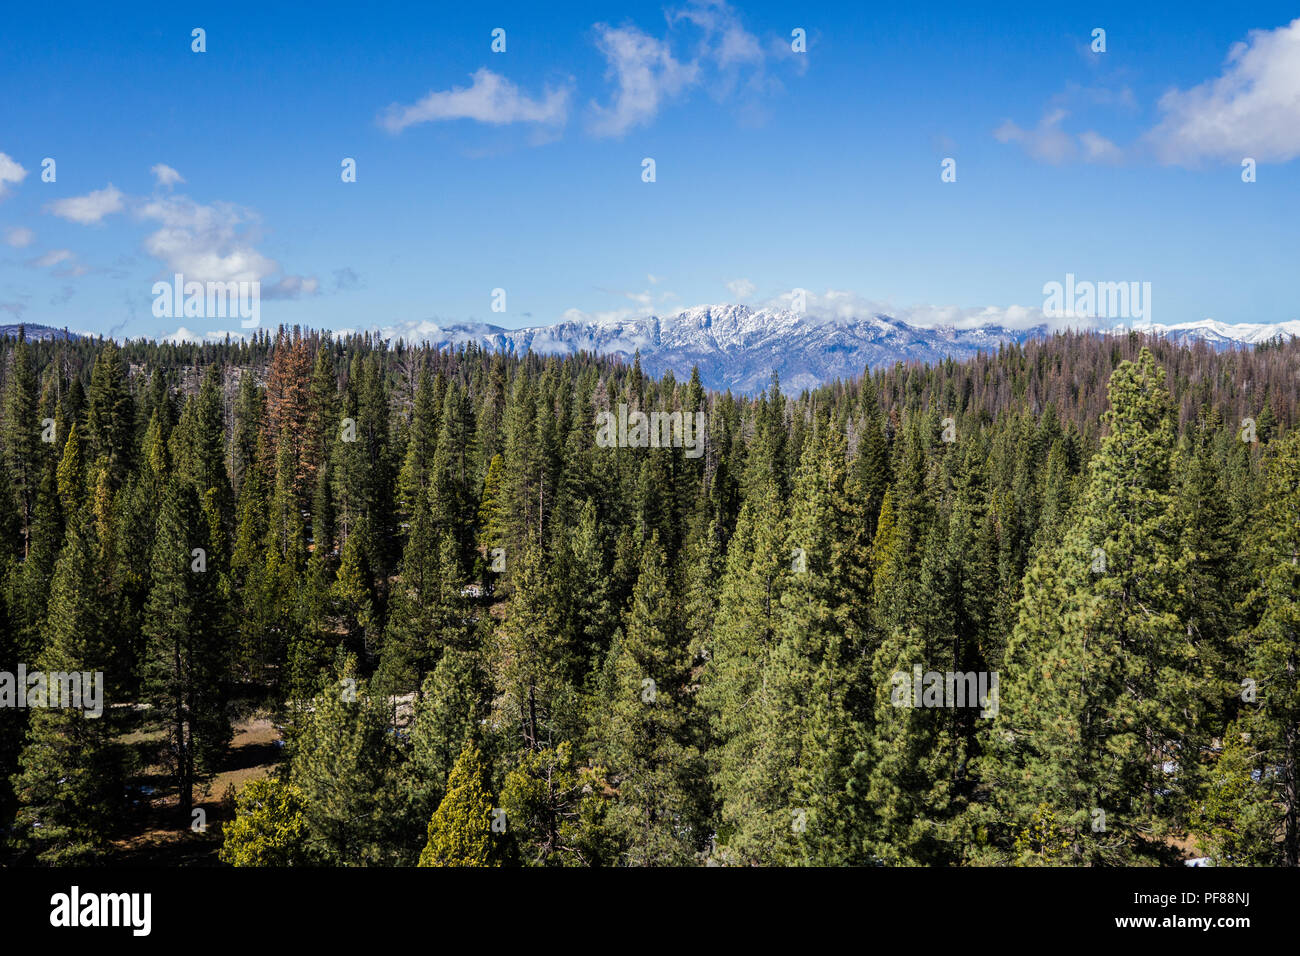 Pine tree forest stretches into the distance with snow-covered mountains beyond. Stock Photo